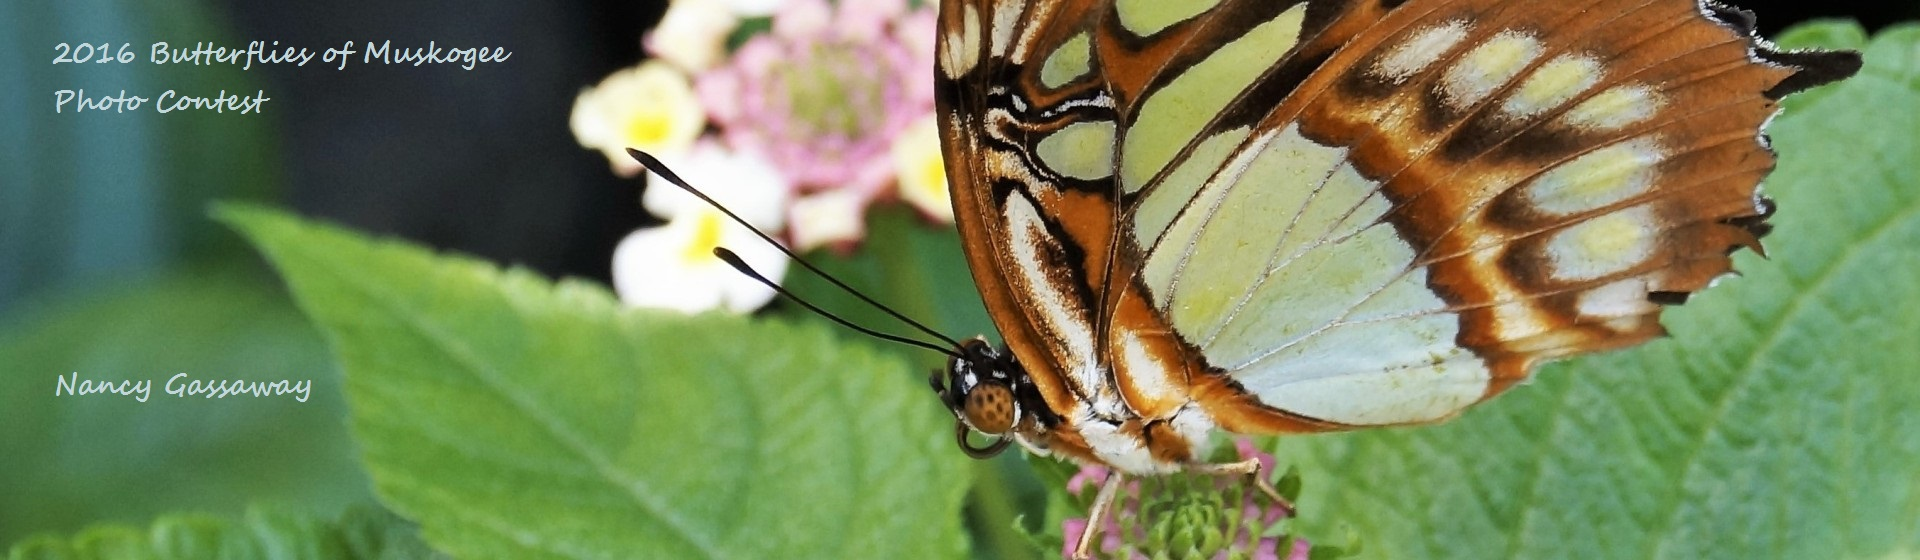 butterflycontest2016-19Web1